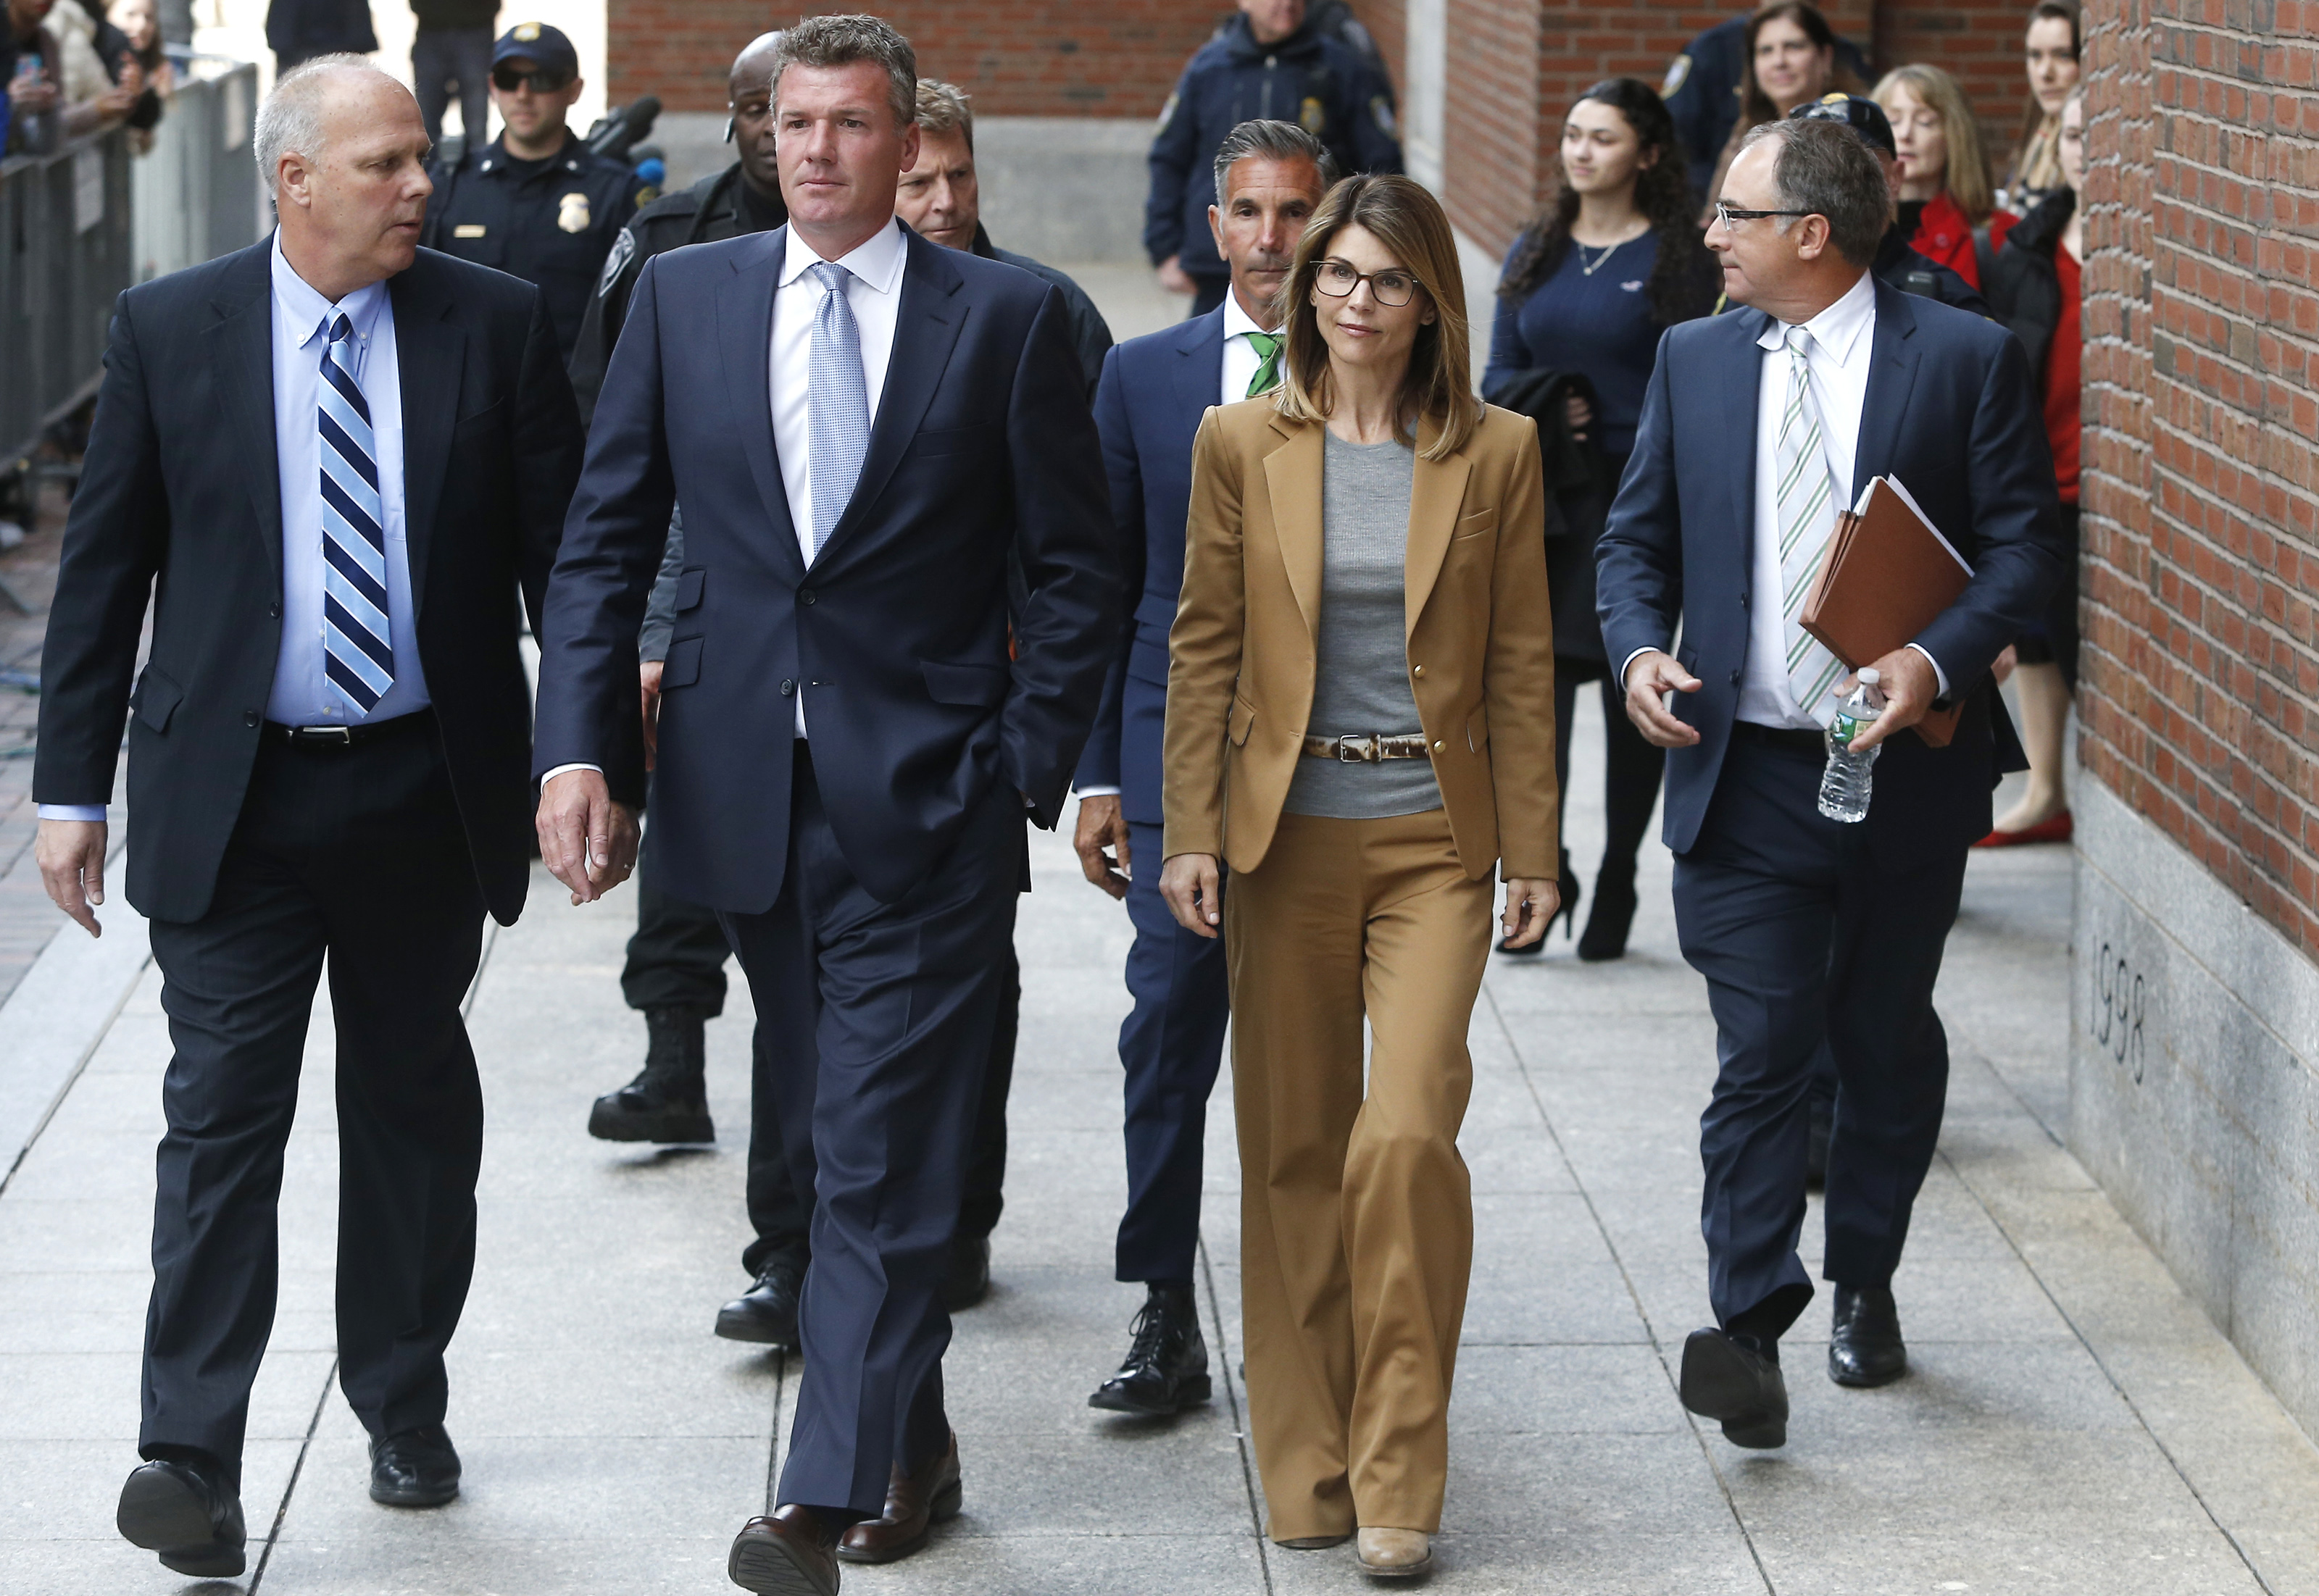 Lori Loughlin college admissions scam